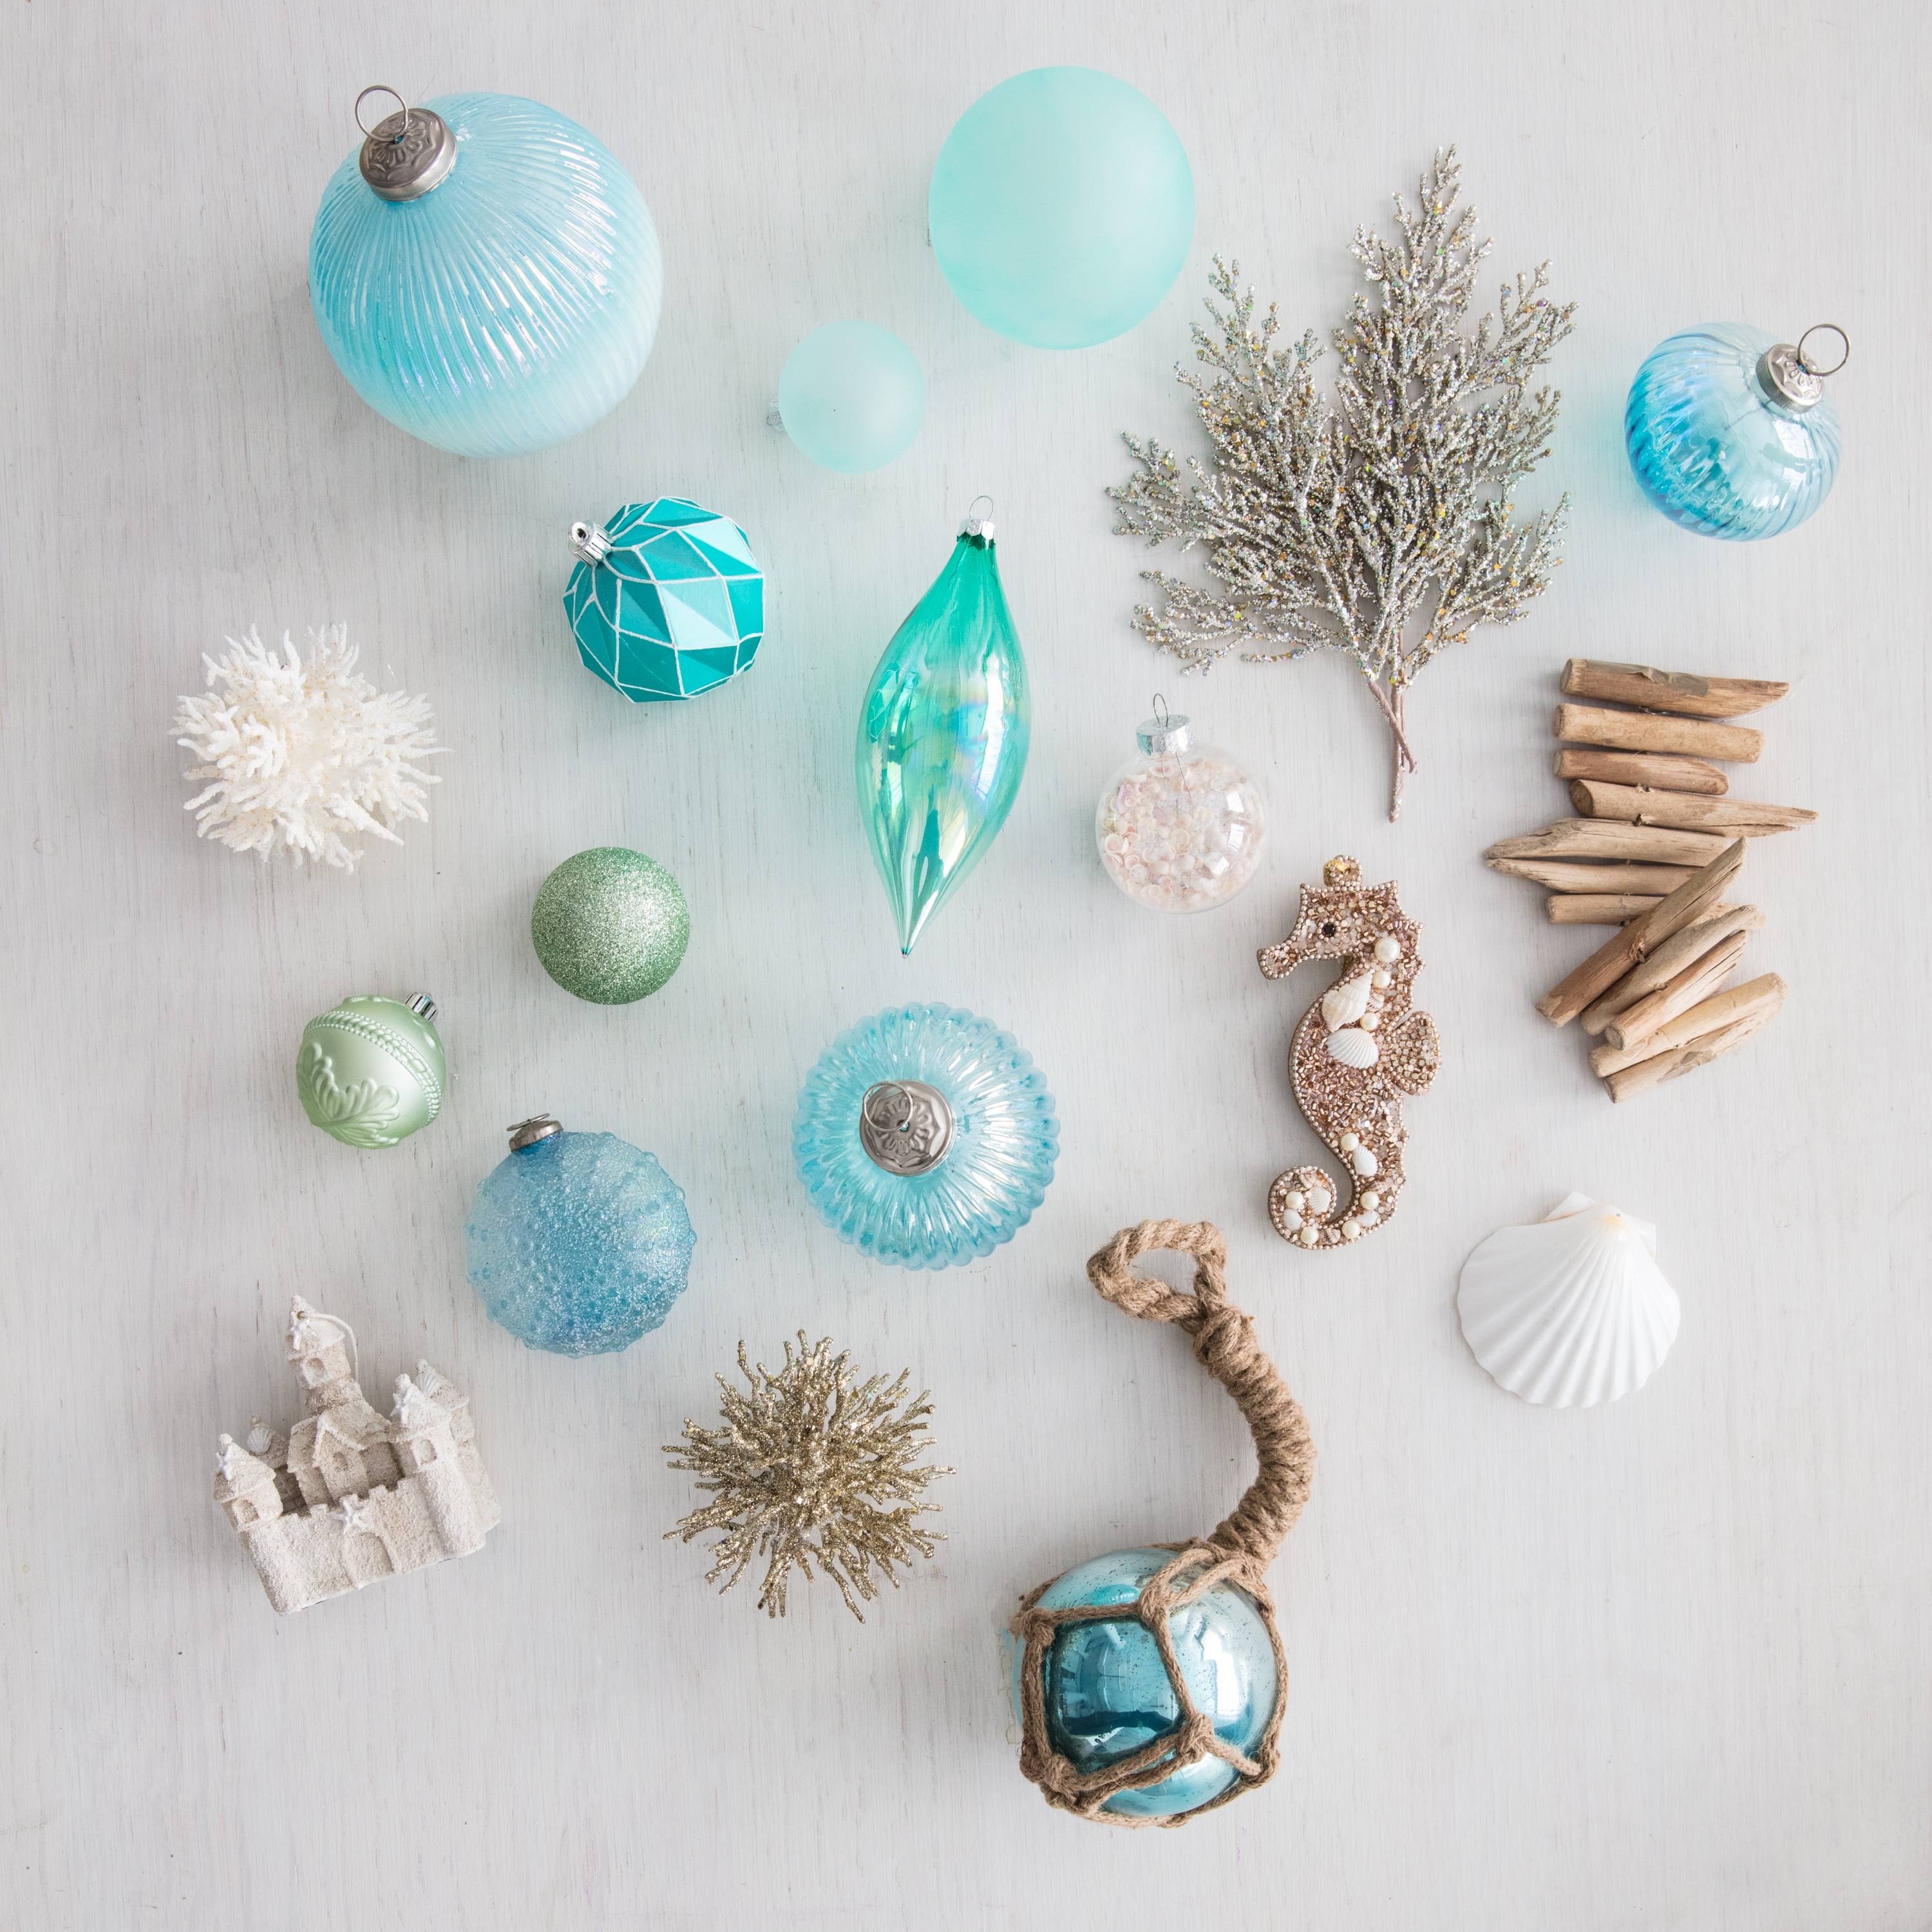 Beach Christmas Tree Topper: How To Decorate A Beach-Themed Christmas Tree With